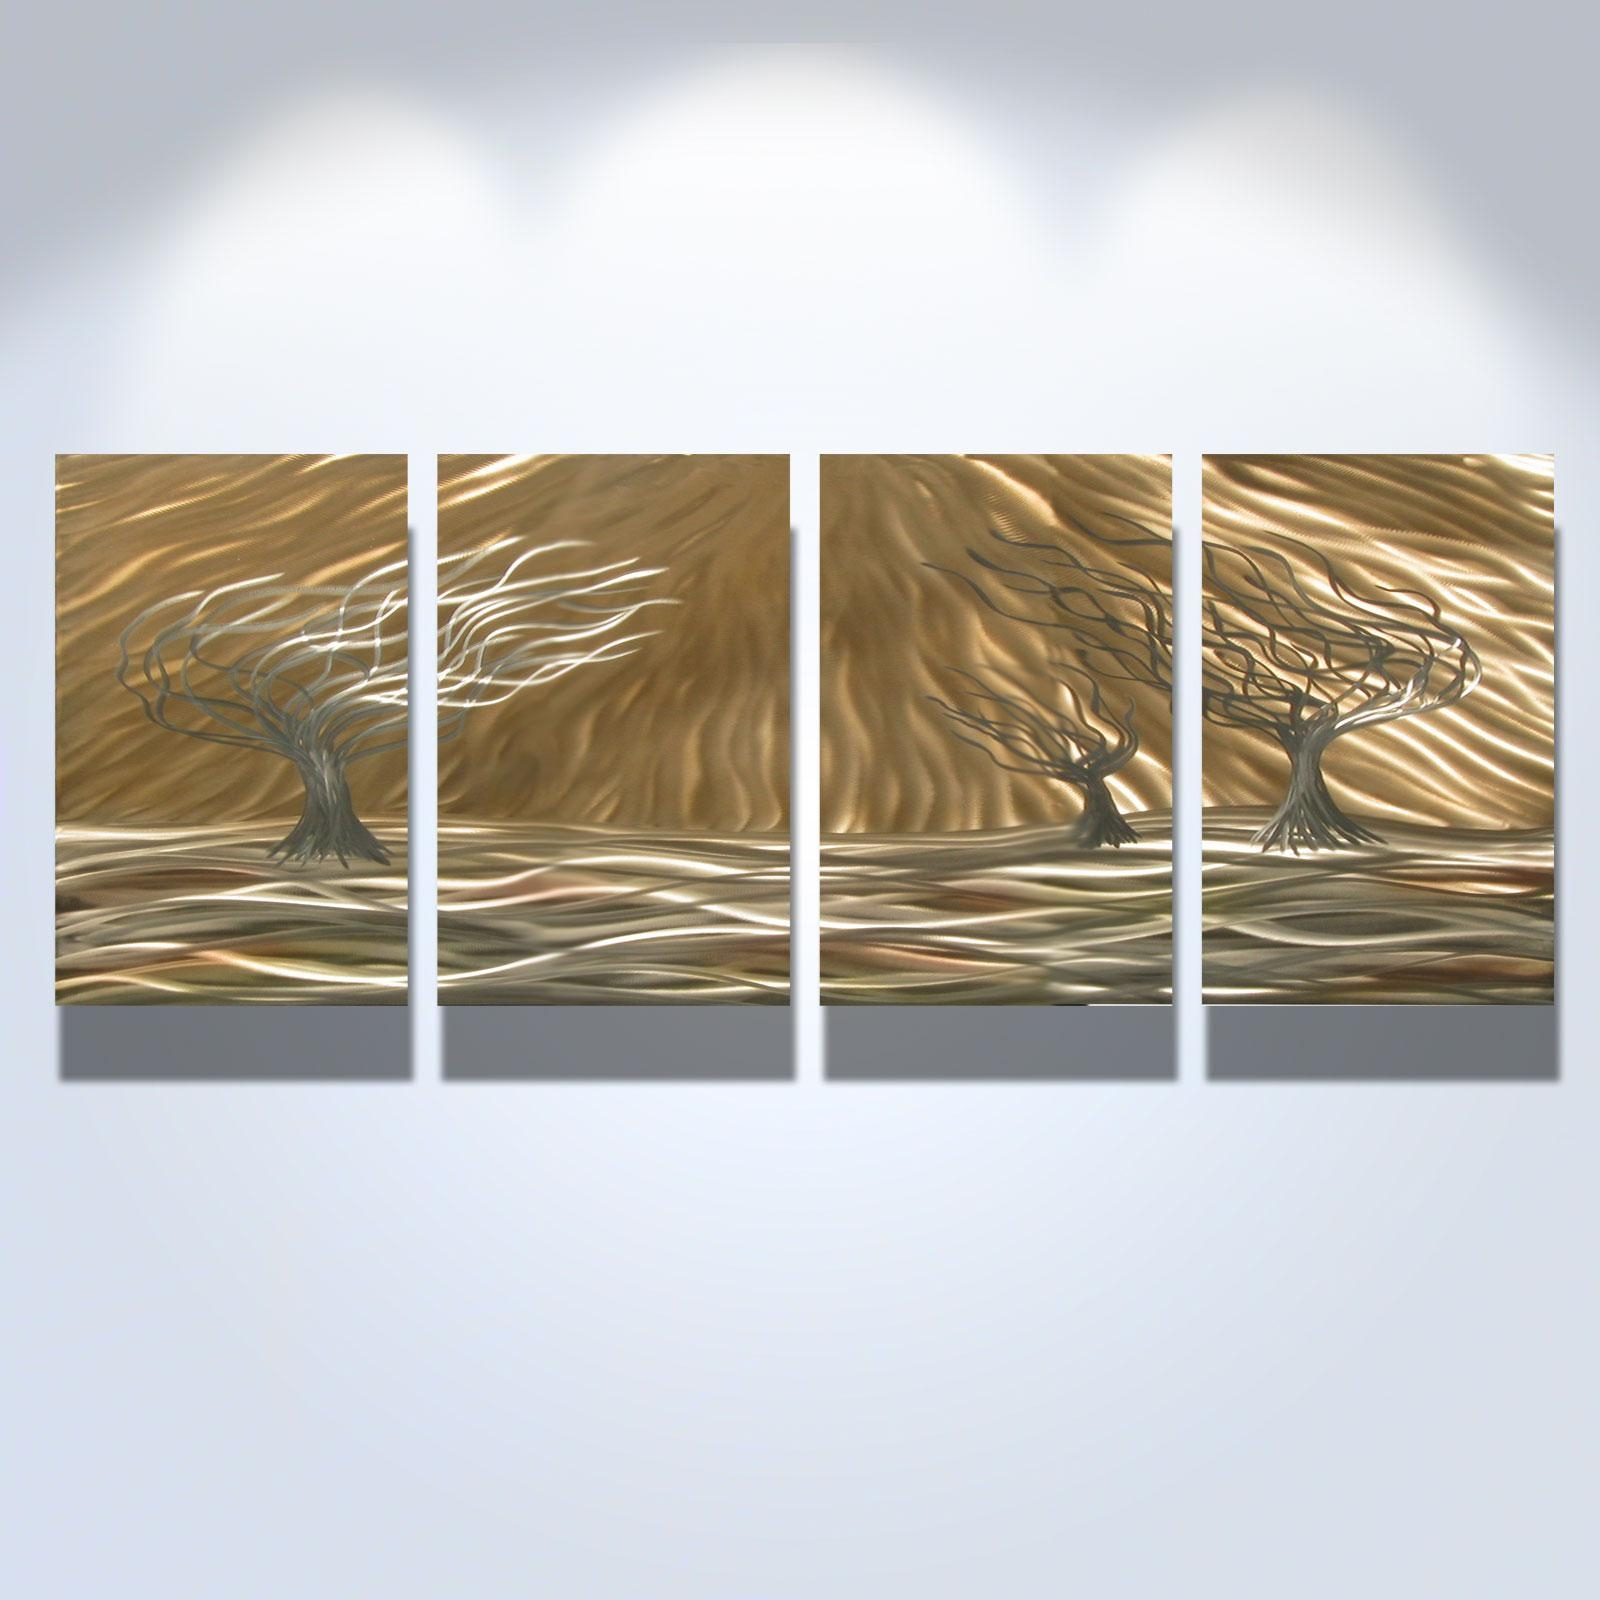 3 Trees 4 Panel – Abstract Metal Wall Art Contemporary Modern With Three Panel Wall Art (Image 6 of 20)